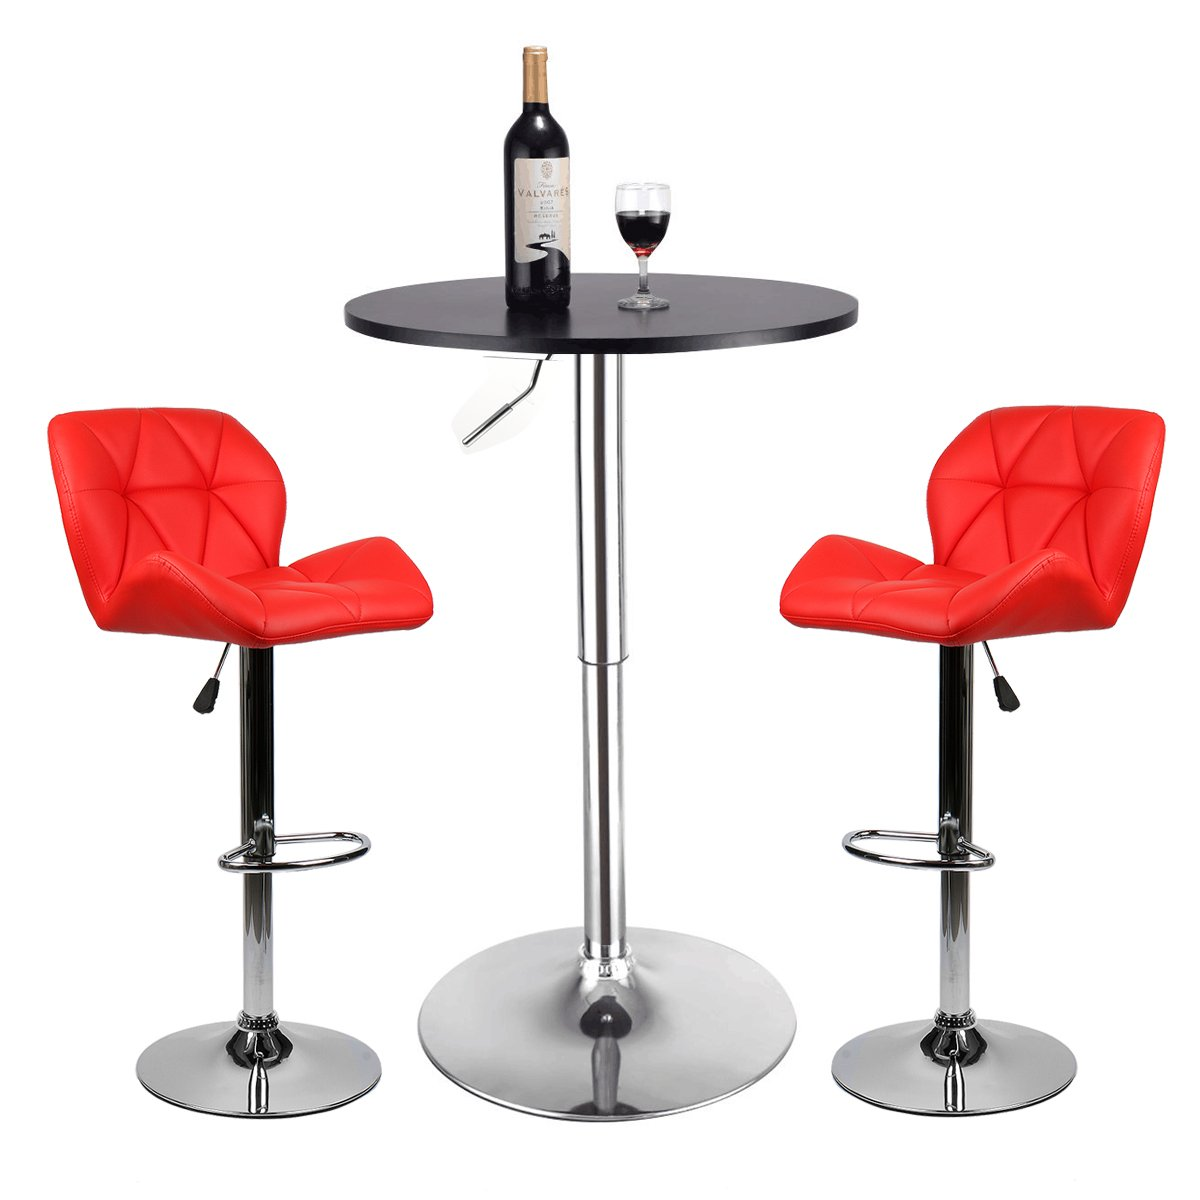 Pub Table Set 3 Piece - 24 inch Round Table with 2 Leatherette Chairs - Height Adjustable (Red Barstools + Black Pub Table)